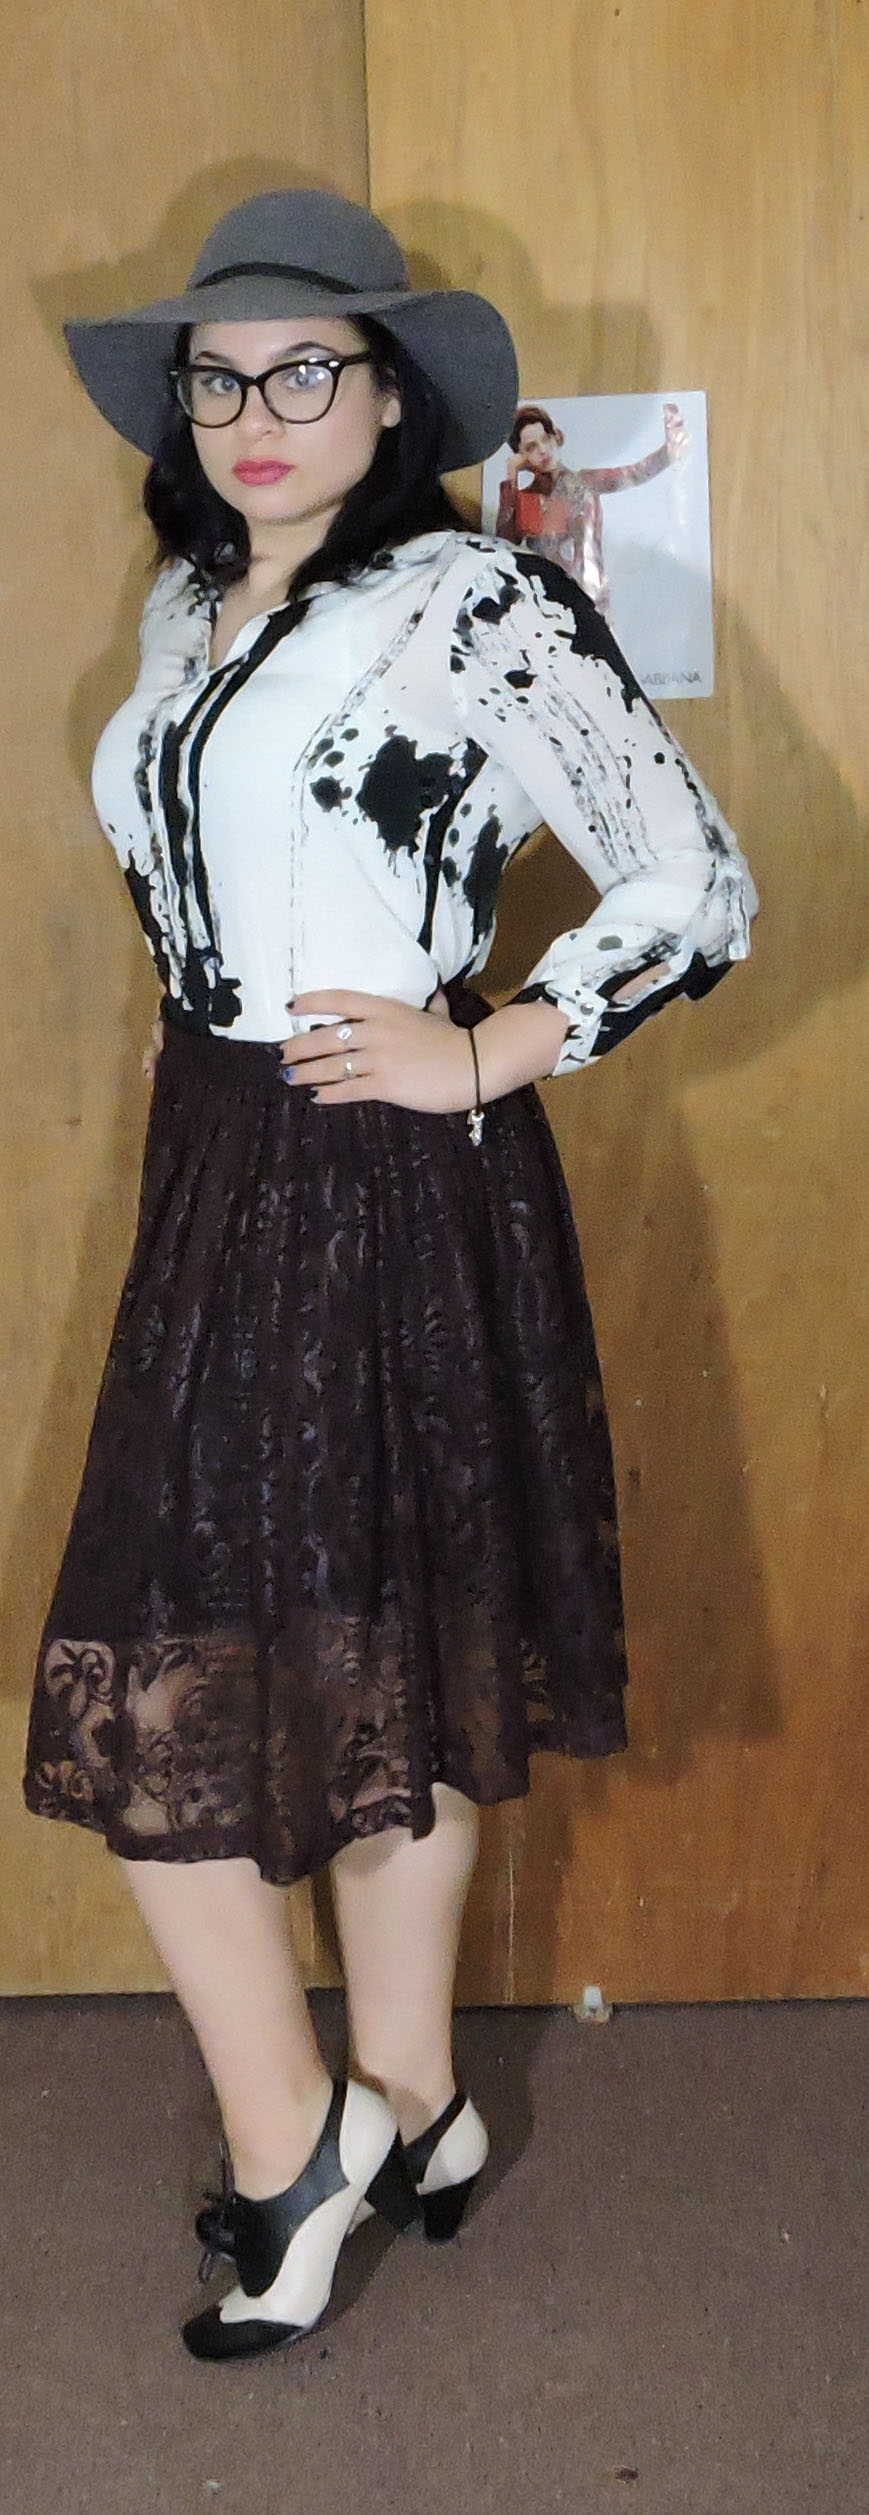 paint shirt with laser cut skirt and black hat.jpg